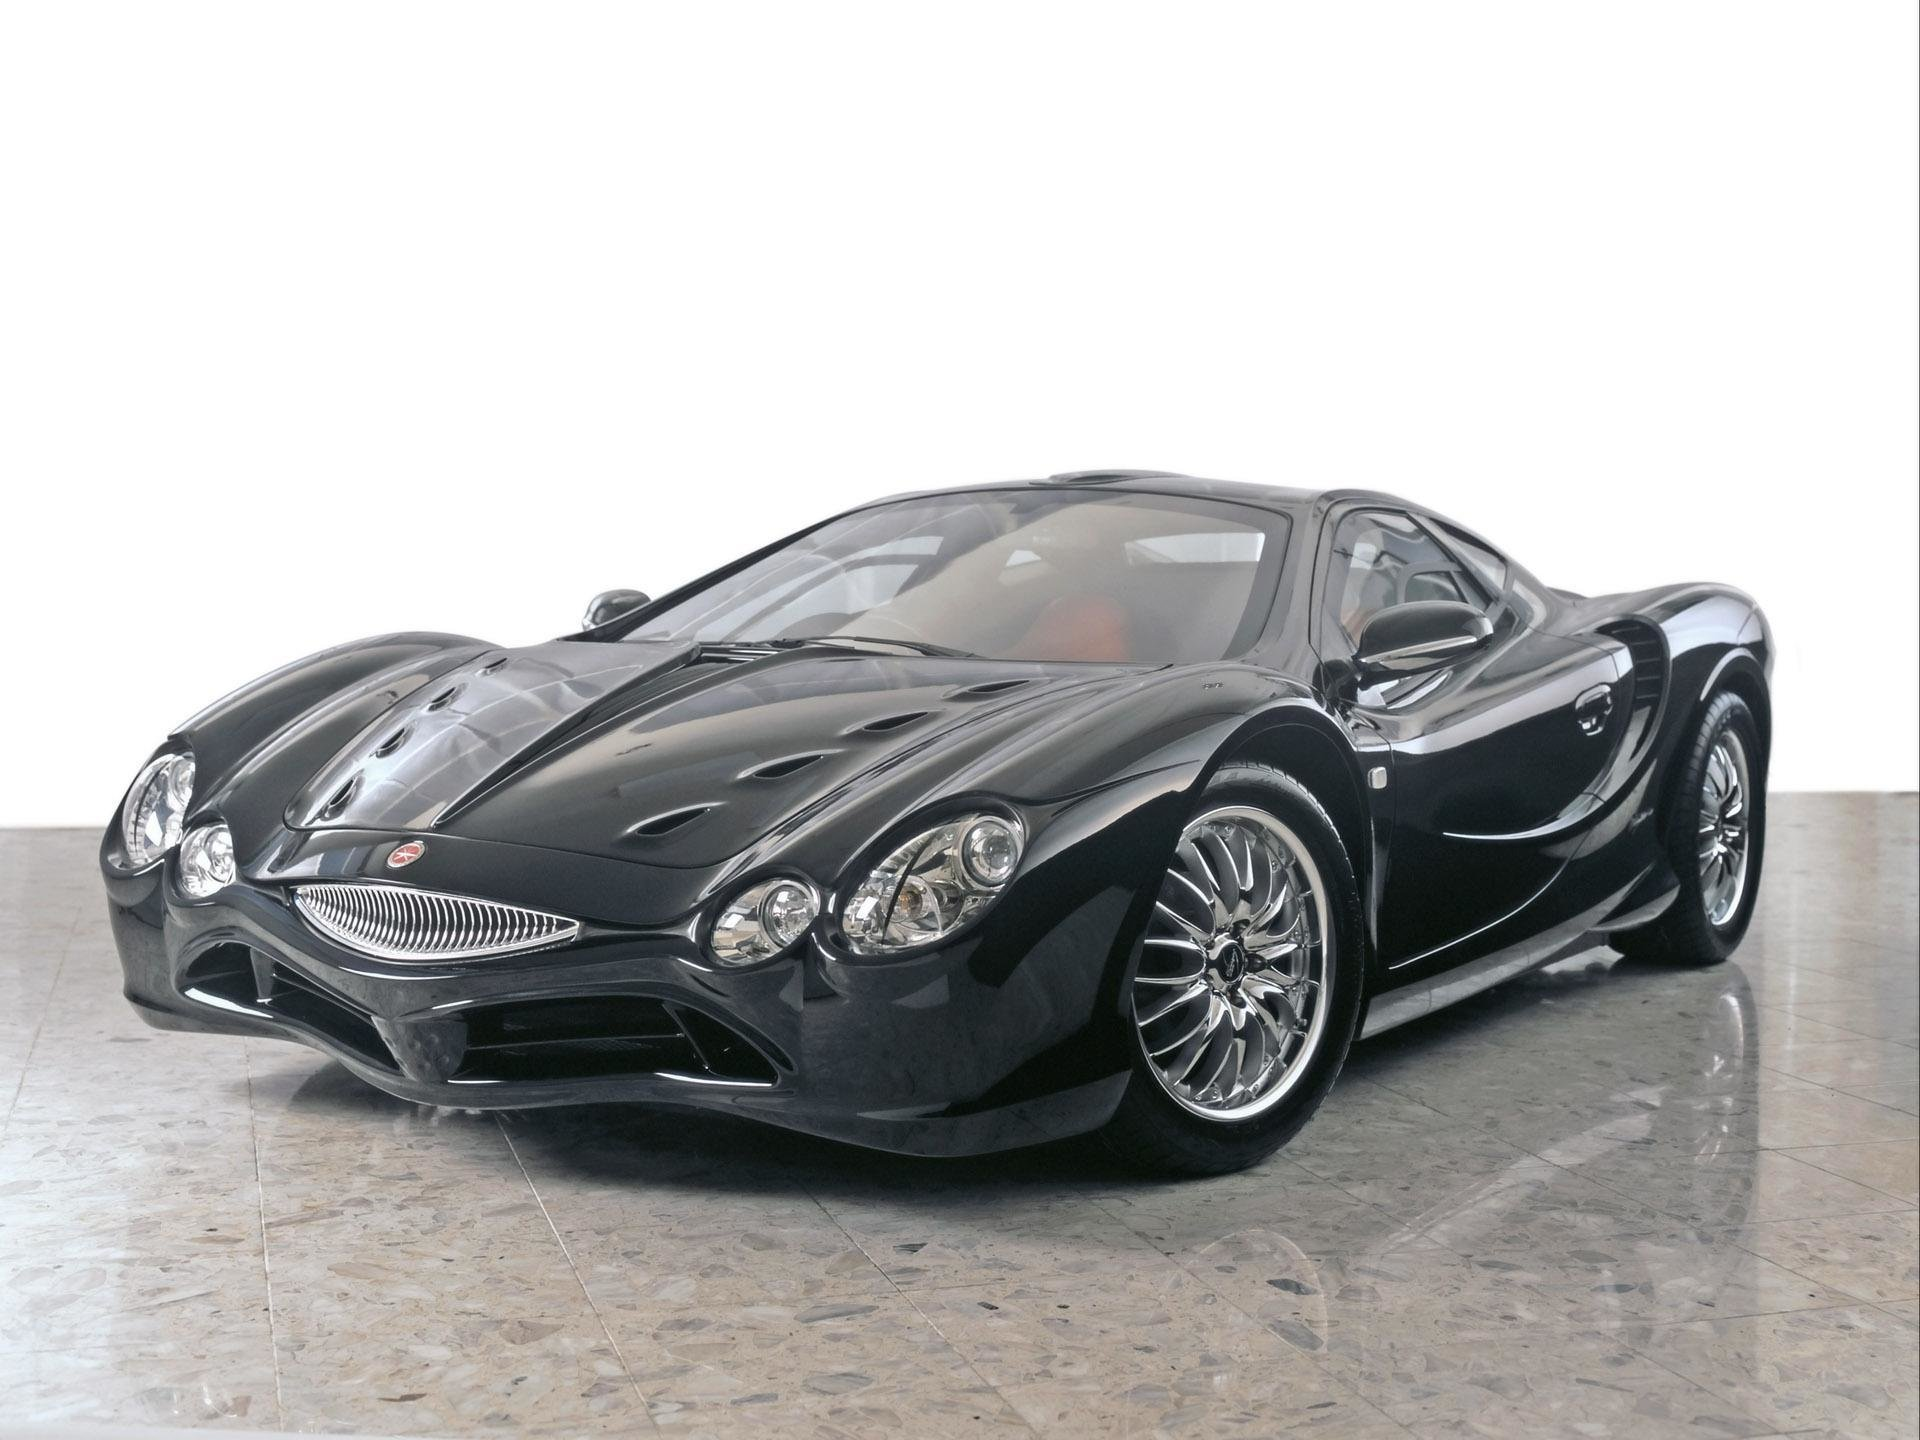 New 2009 Mitsuoka Orochi Conceptcarz Com On This Month